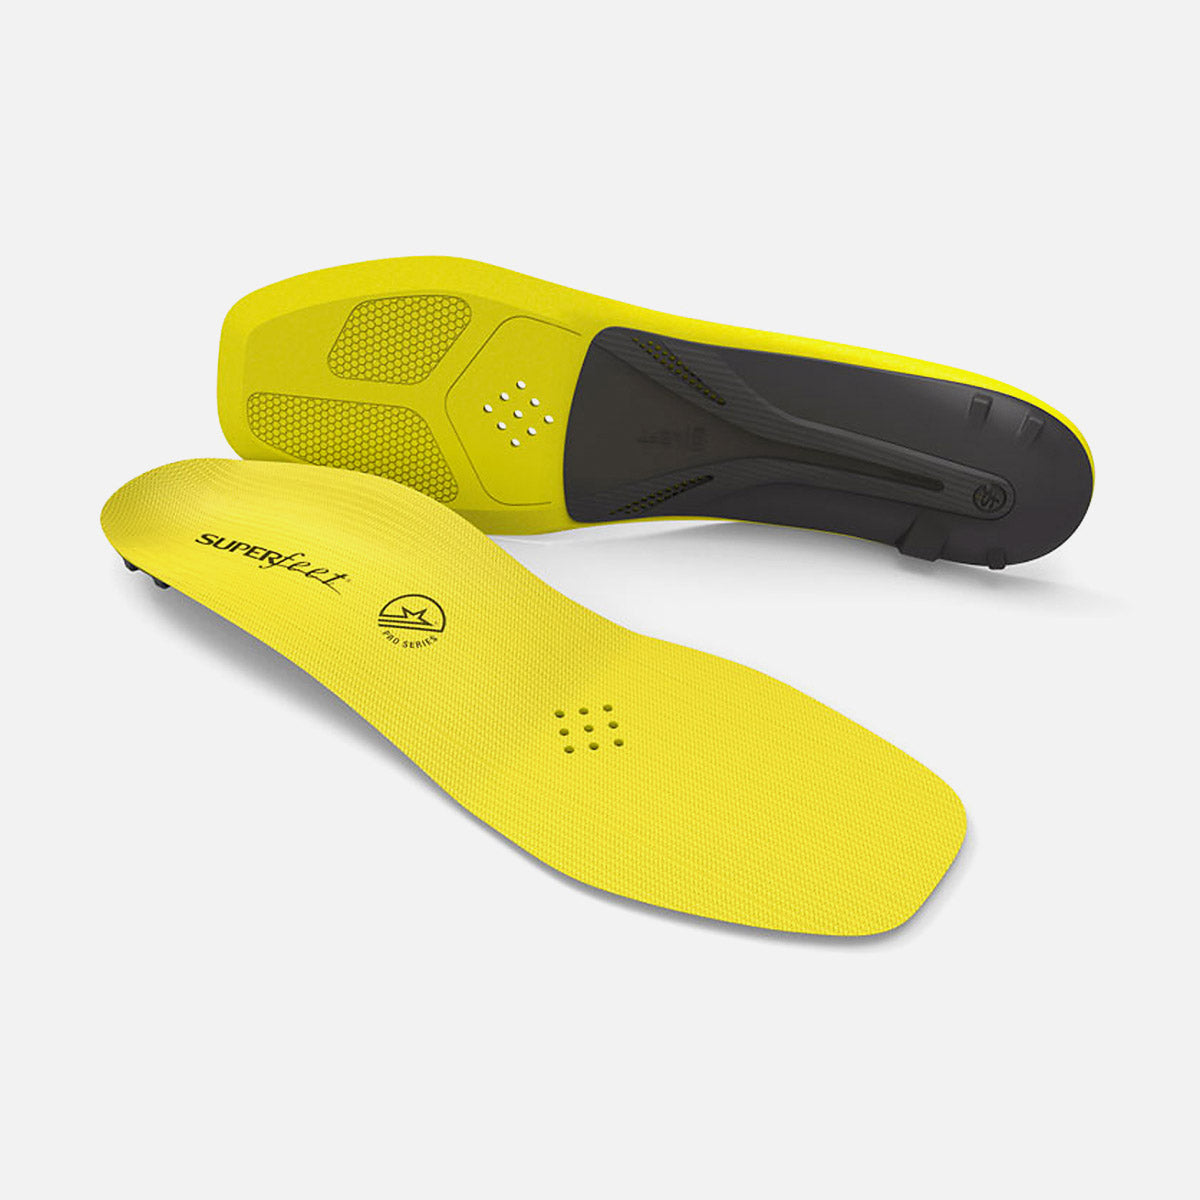 Superfeet Carbon Pro Hockey Skate Insoles